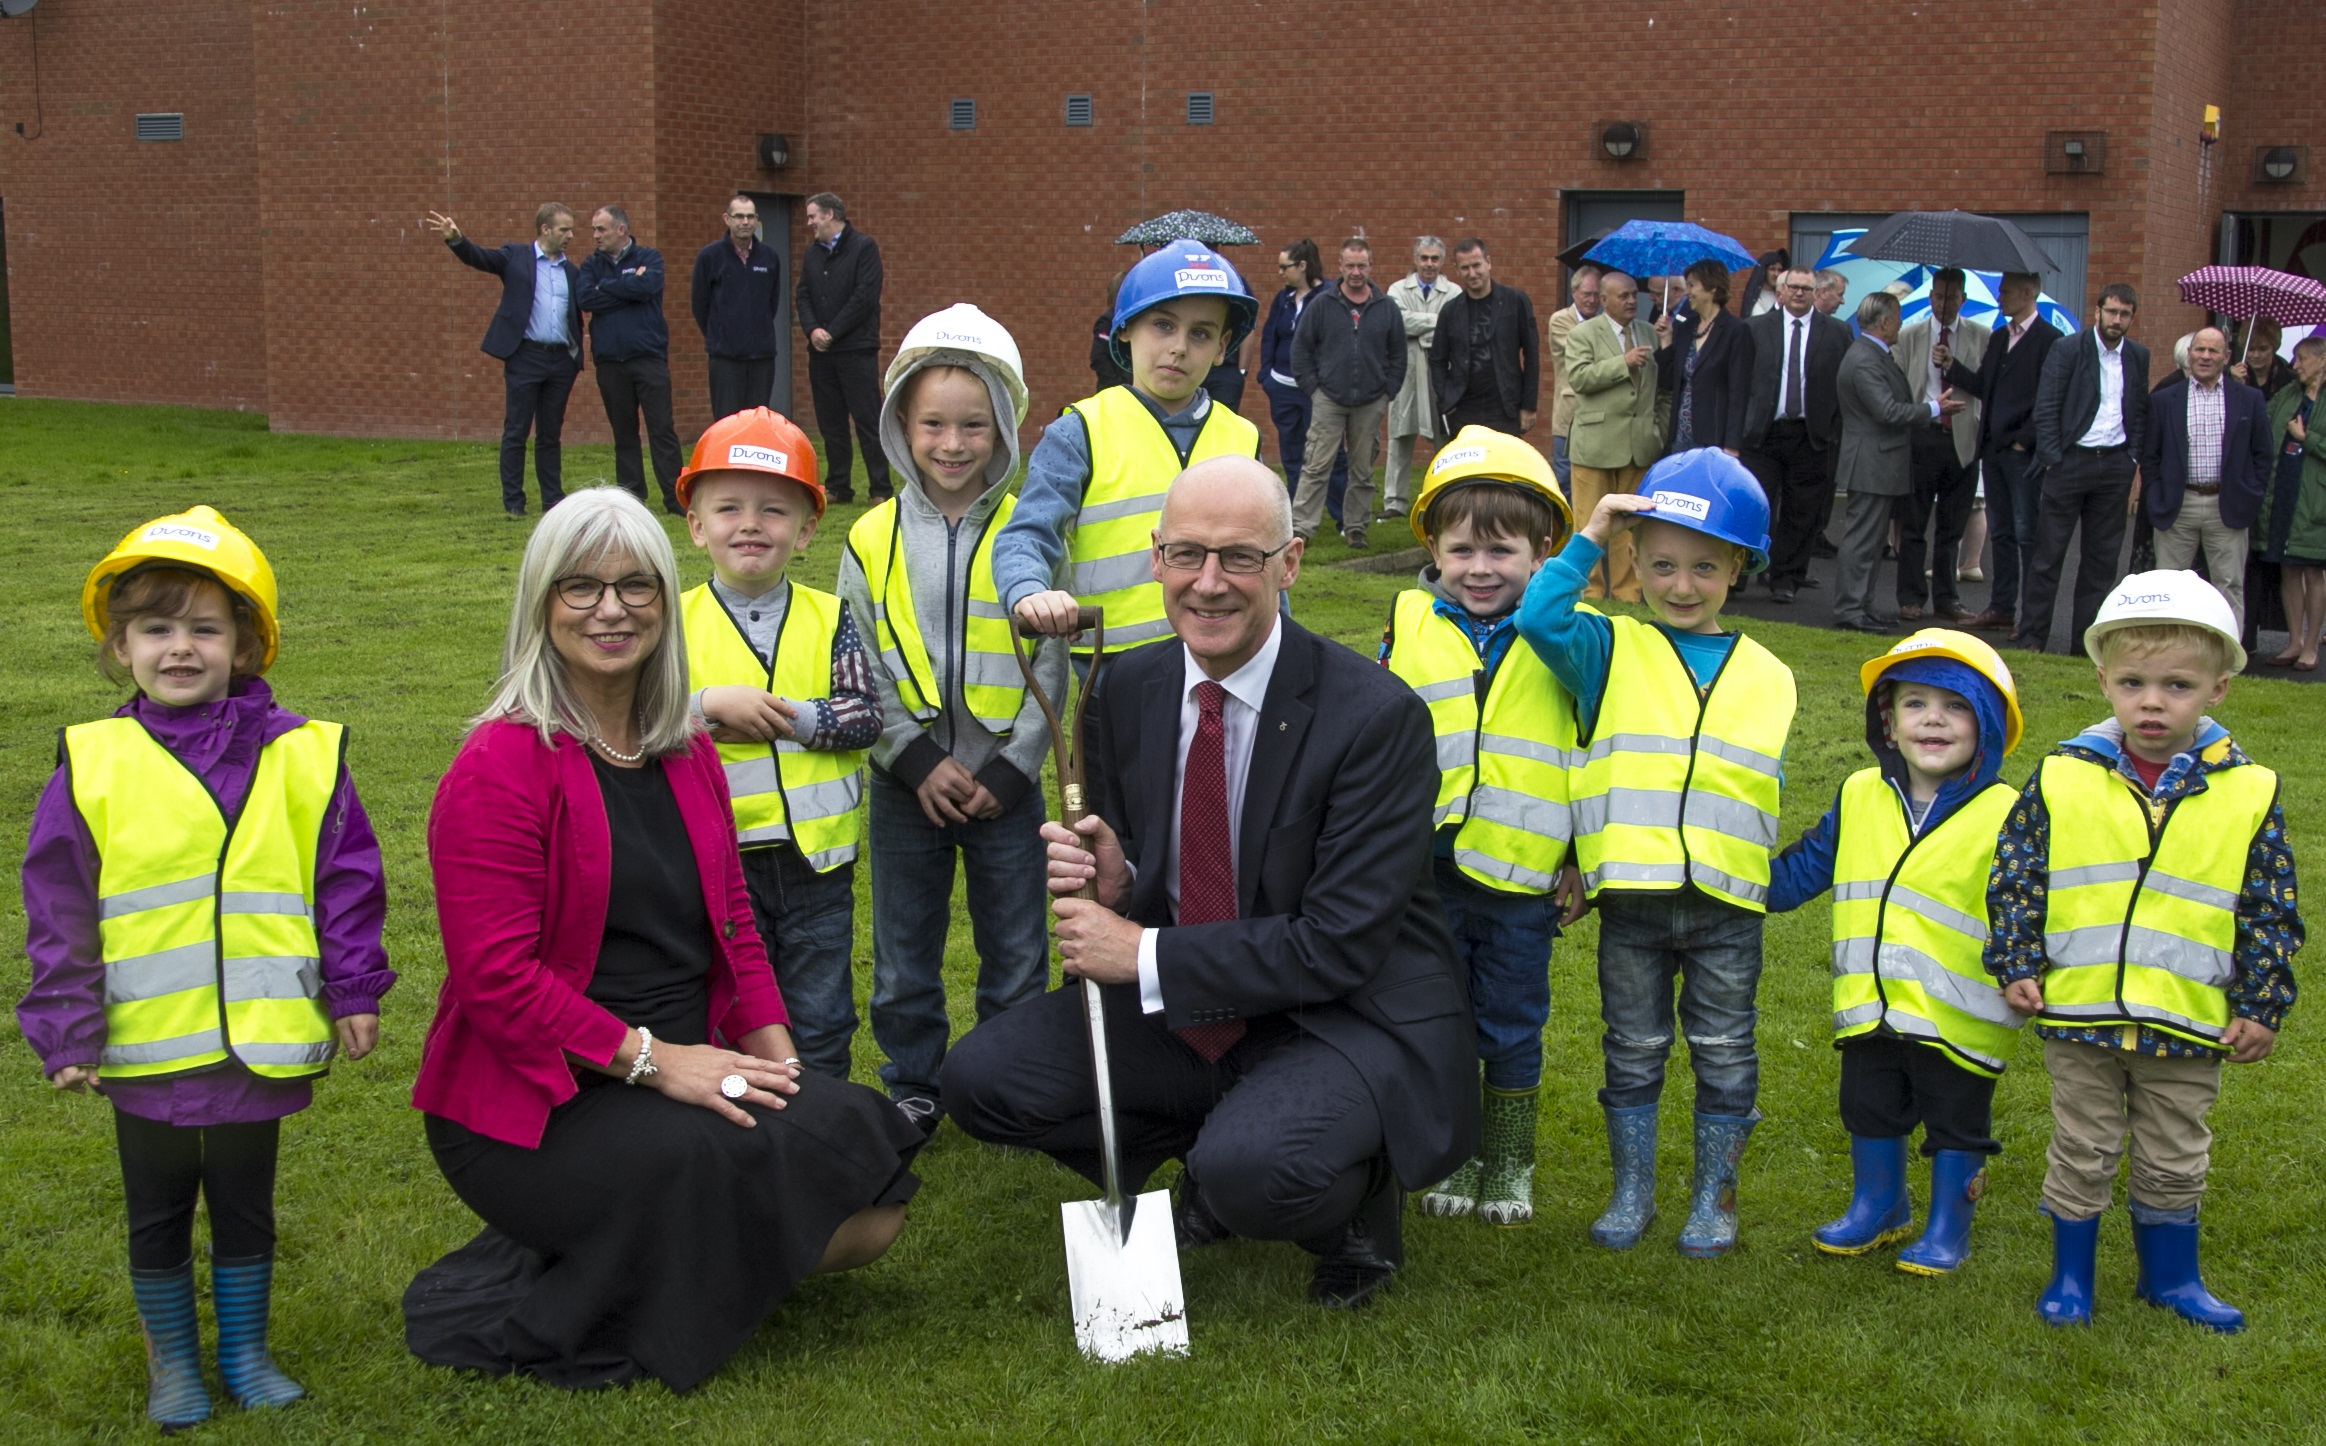 Academy of Sport and Wellbeing Celebrated with Turf Cutting